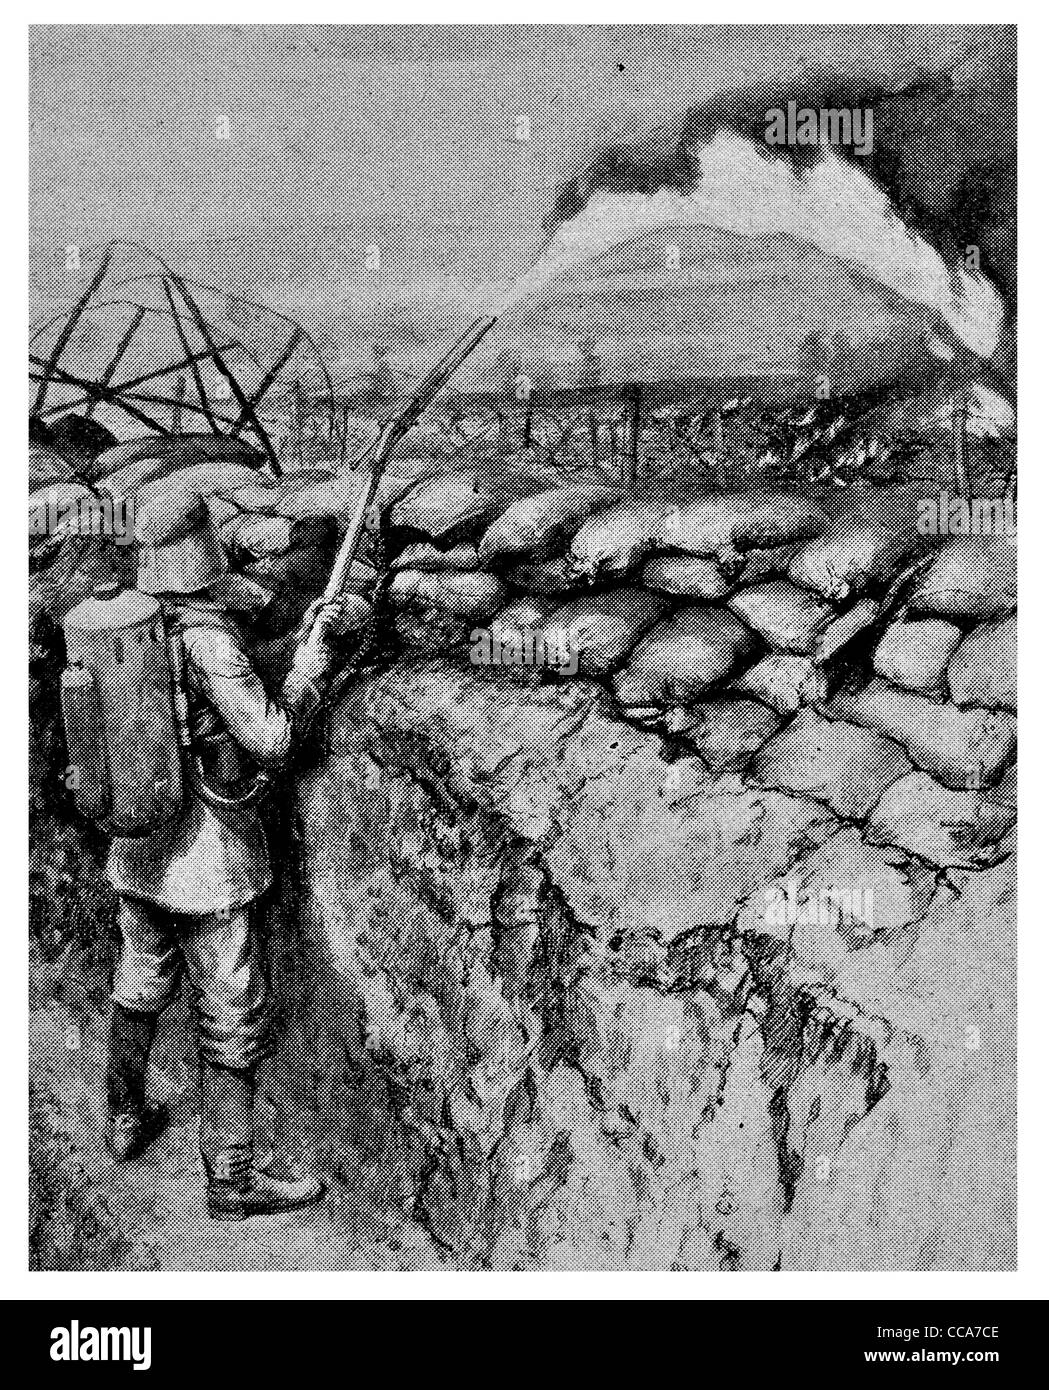 1915 German Flame thrower Hooge trenches spraying British troops liquid fire gas propane Flanders Belgium tank barbed - Stock Image